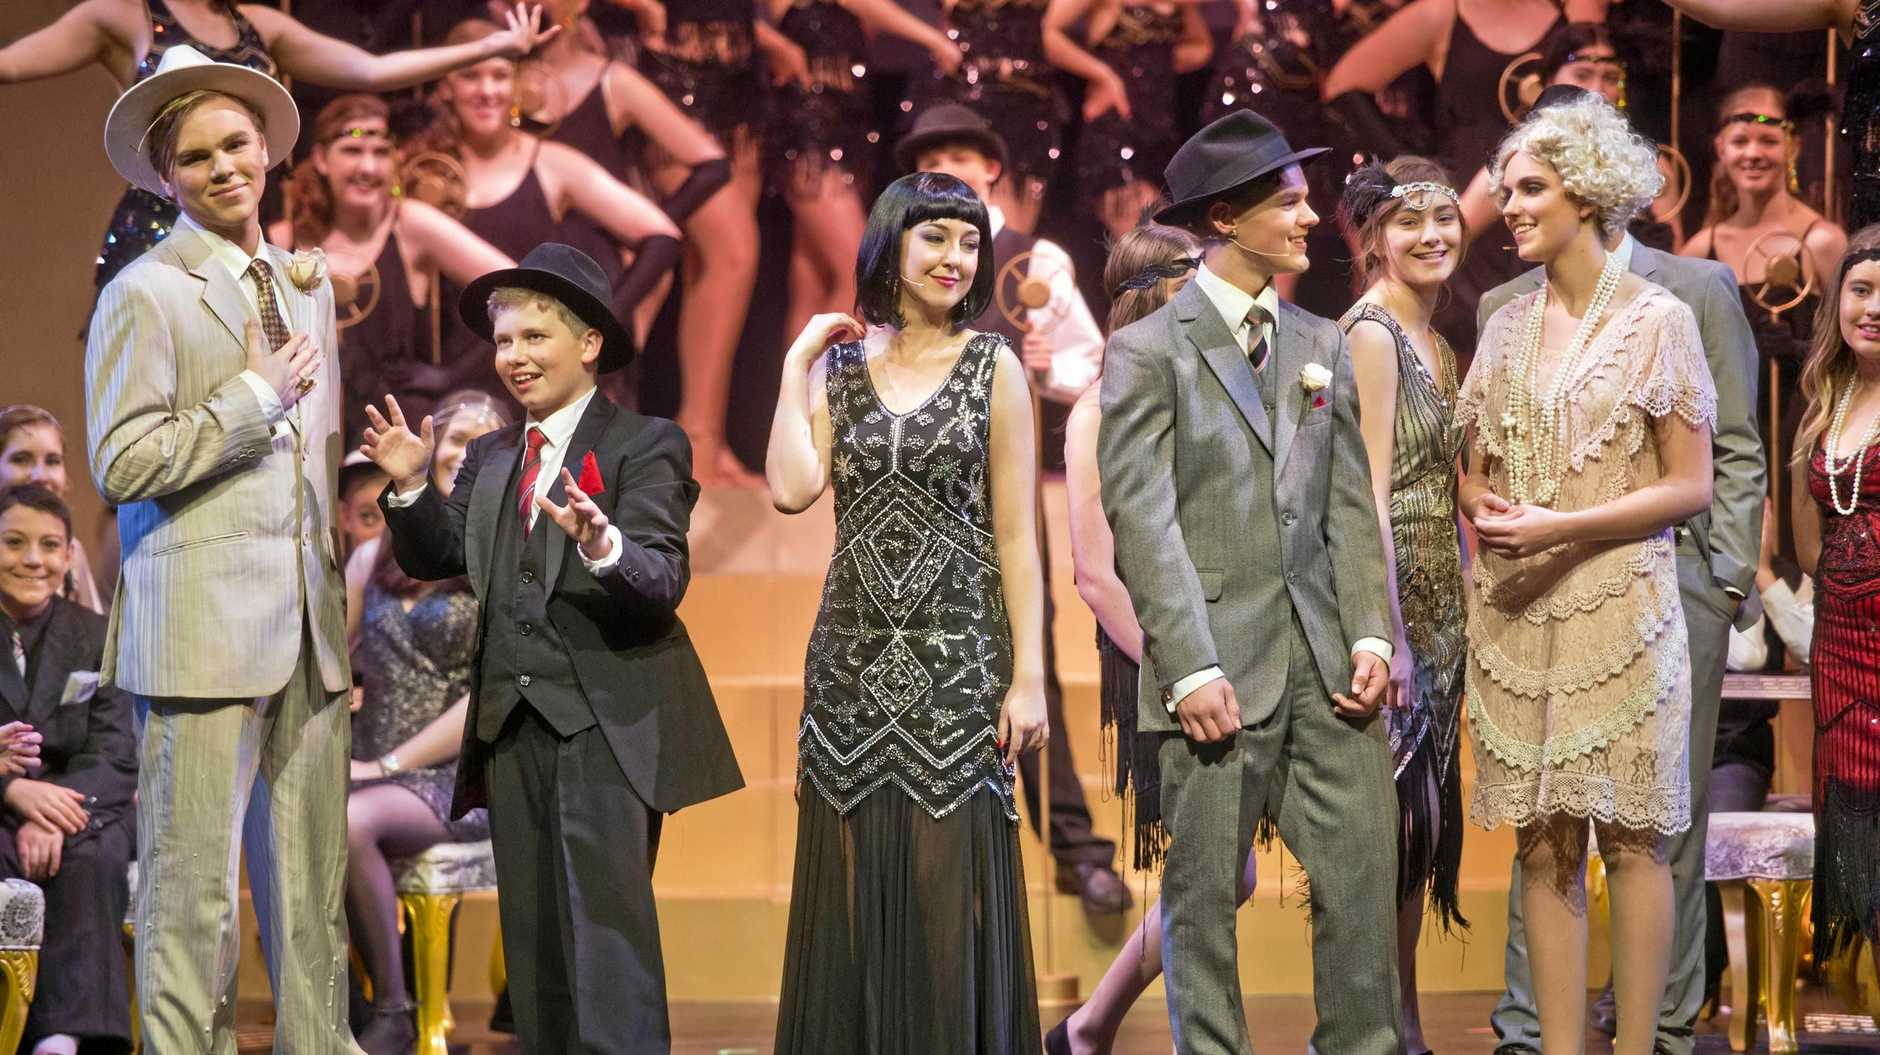 ROARING TWENTIES: Gearing up for their opening night performance of the musical Bugsy Malone are Concordia Lutheran College students (from left) Dion Warren, Josh Lambert, Meg Kirby, James Hancock and Alanah Coverdale.